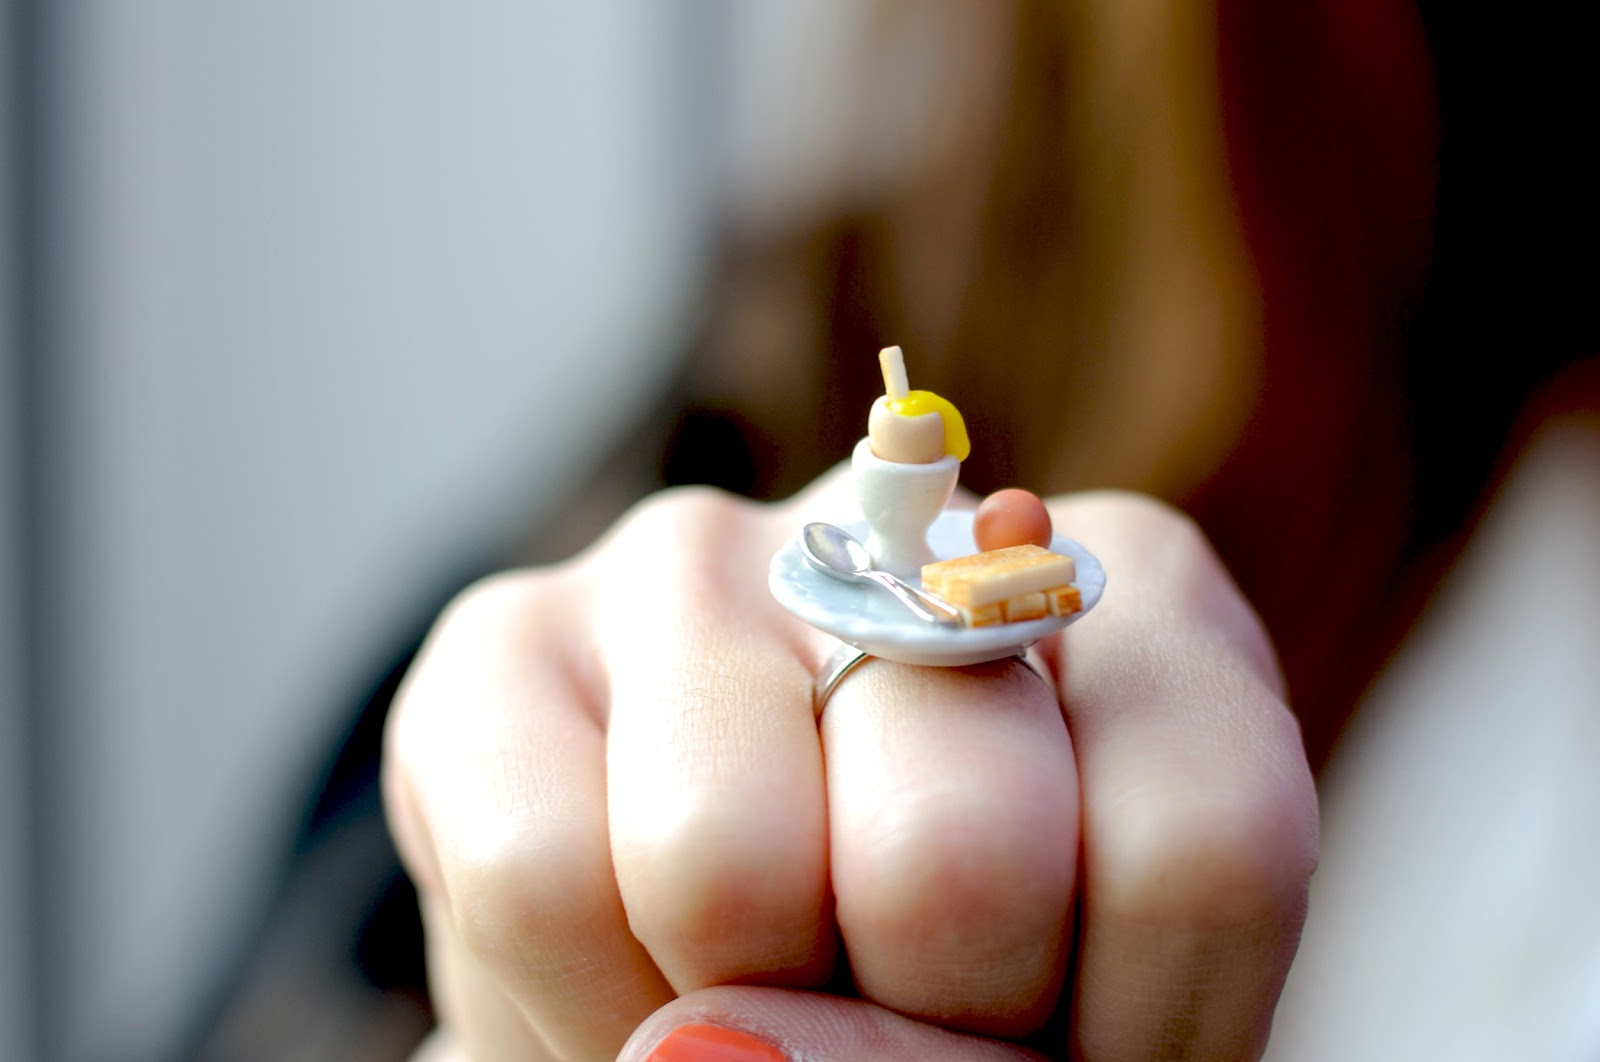 quirky jewellery, egg and soldier ring, cute jewellery, temporary secretary jewellery